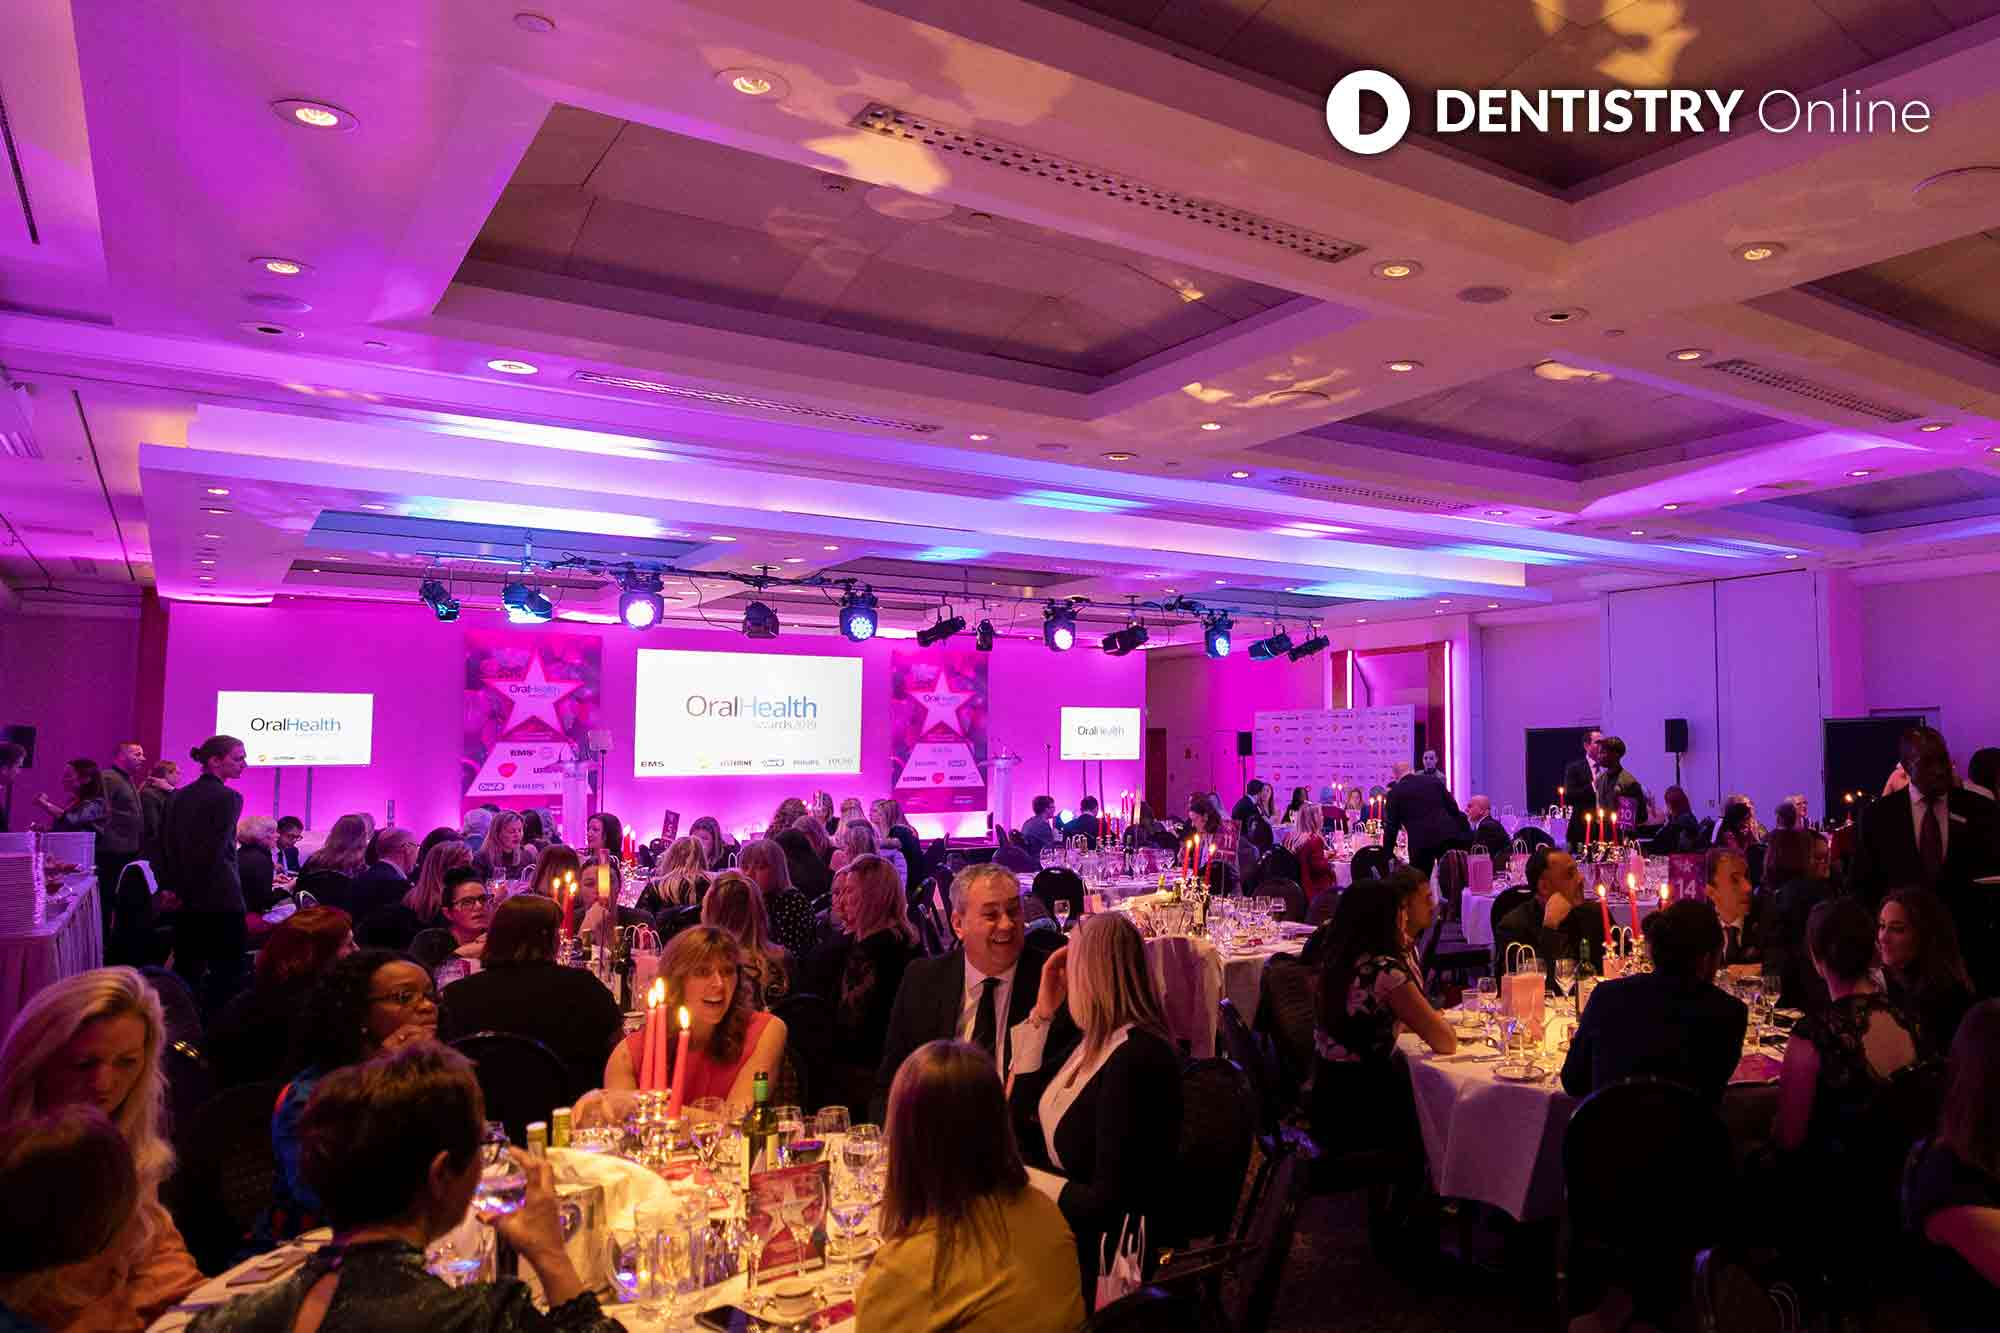 Andy Davies, clinical director at Abercon Dental Care, discusses the excitement of taking home the award for Best Care of Nervous Patients at the Oral Health Awards